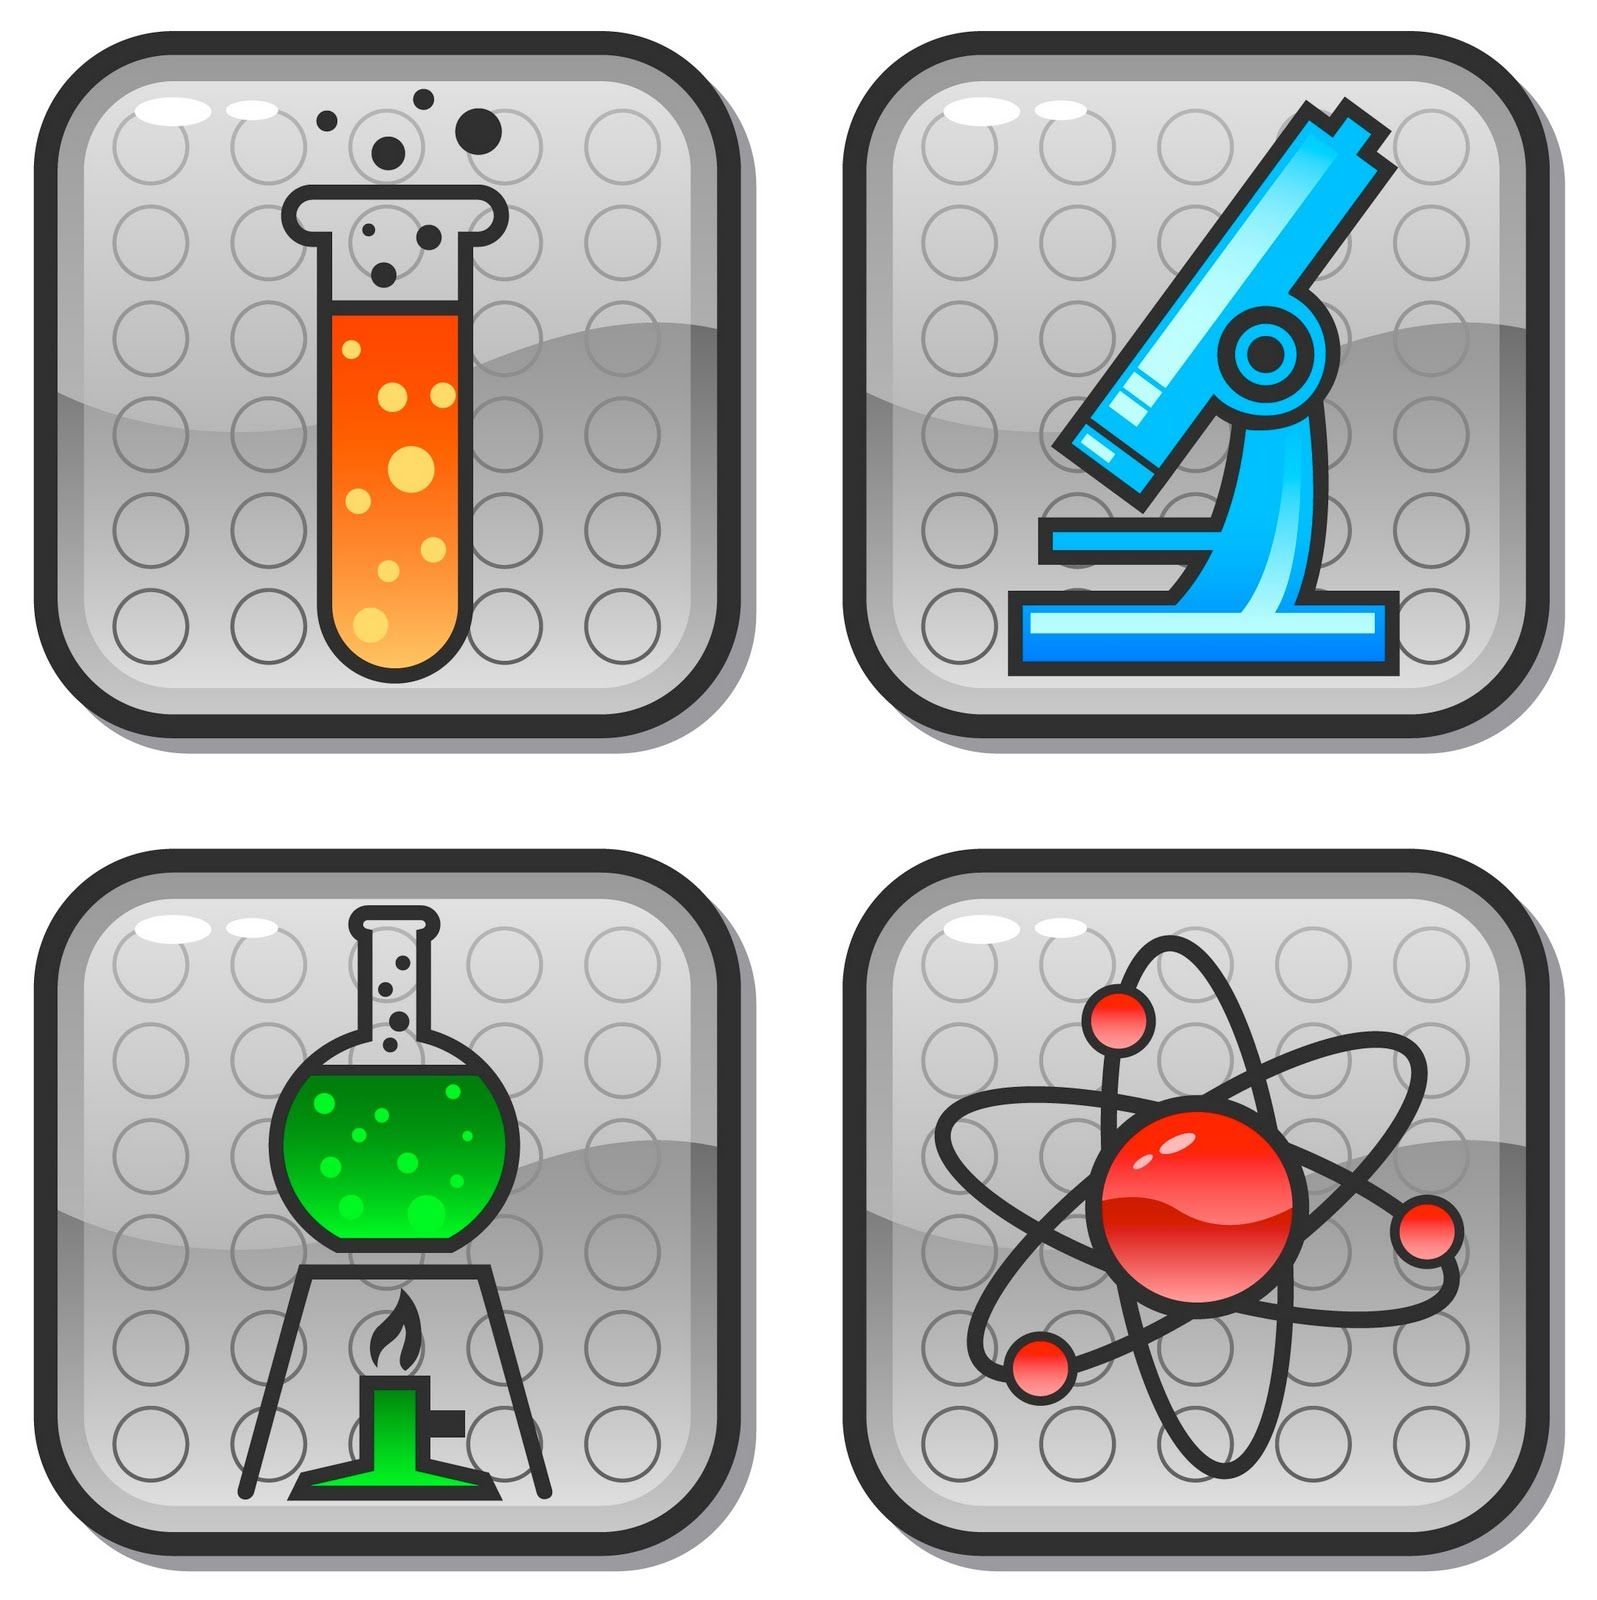 Stem clipart science experiment science. Clip art icons places